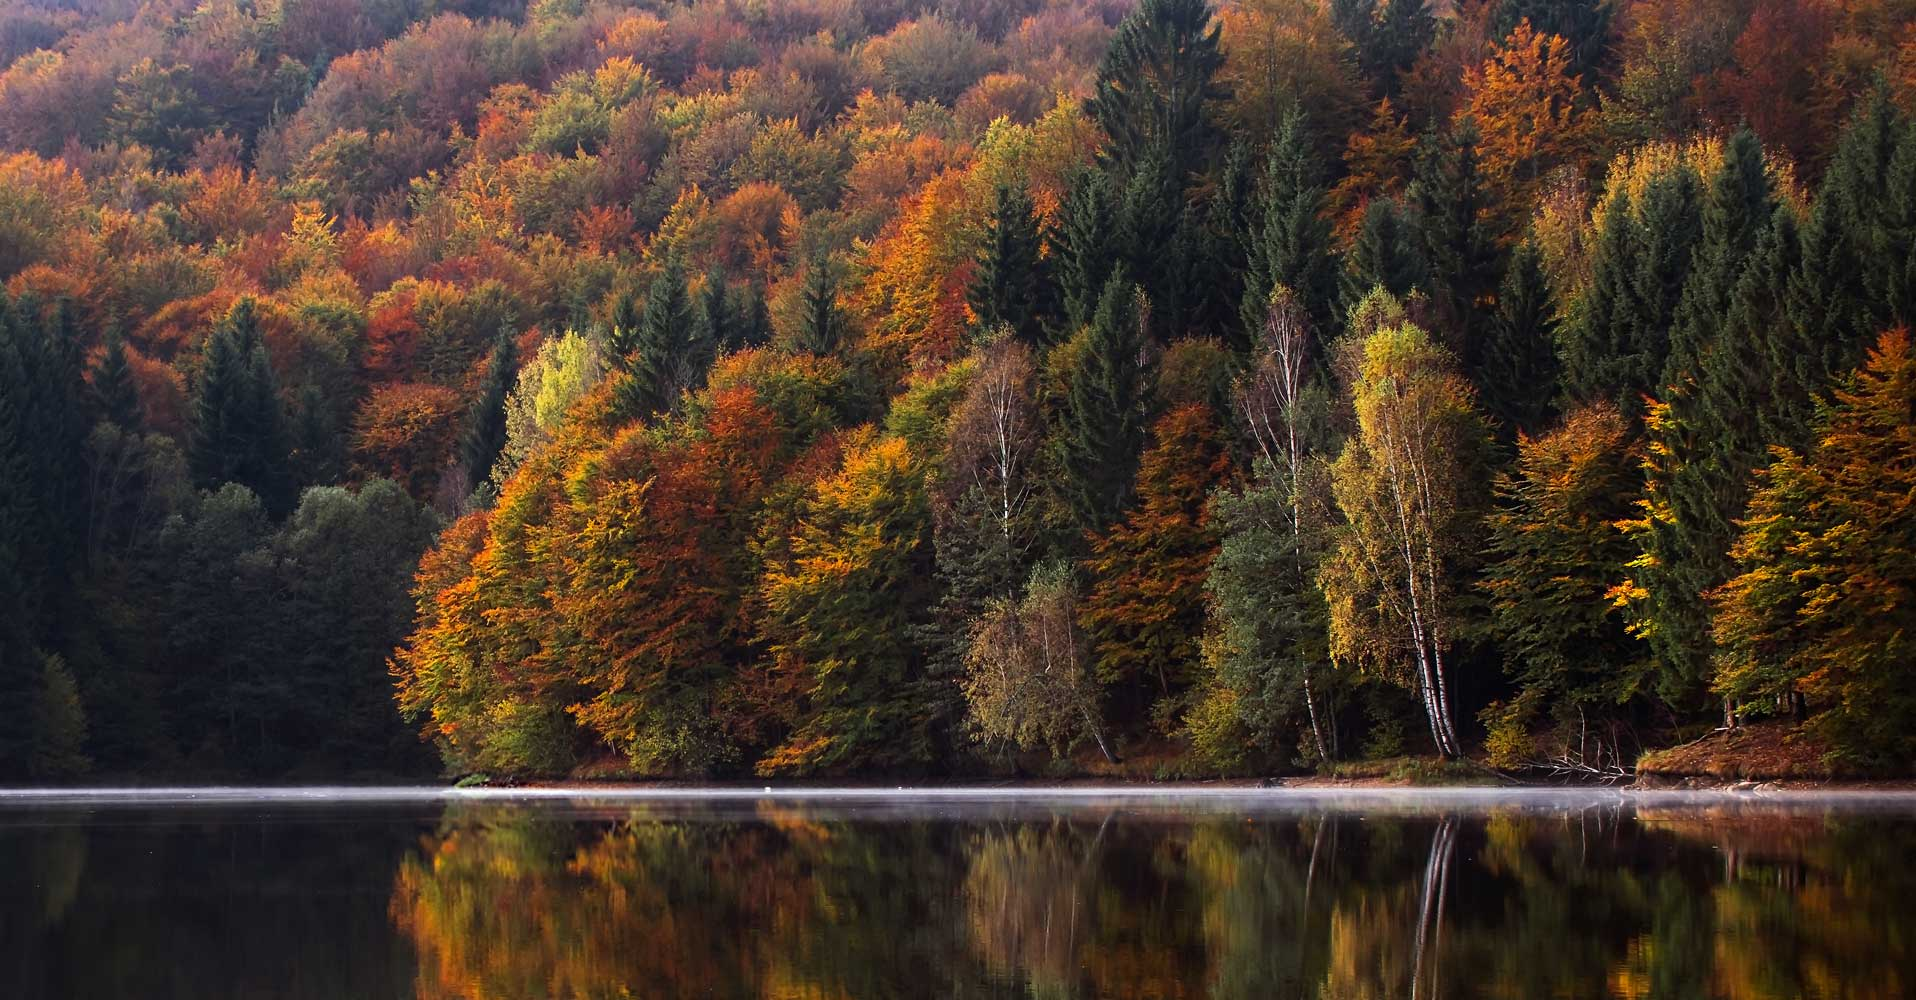 Best places to see fall colors in the u s actionhub for Best fall destinations in the us